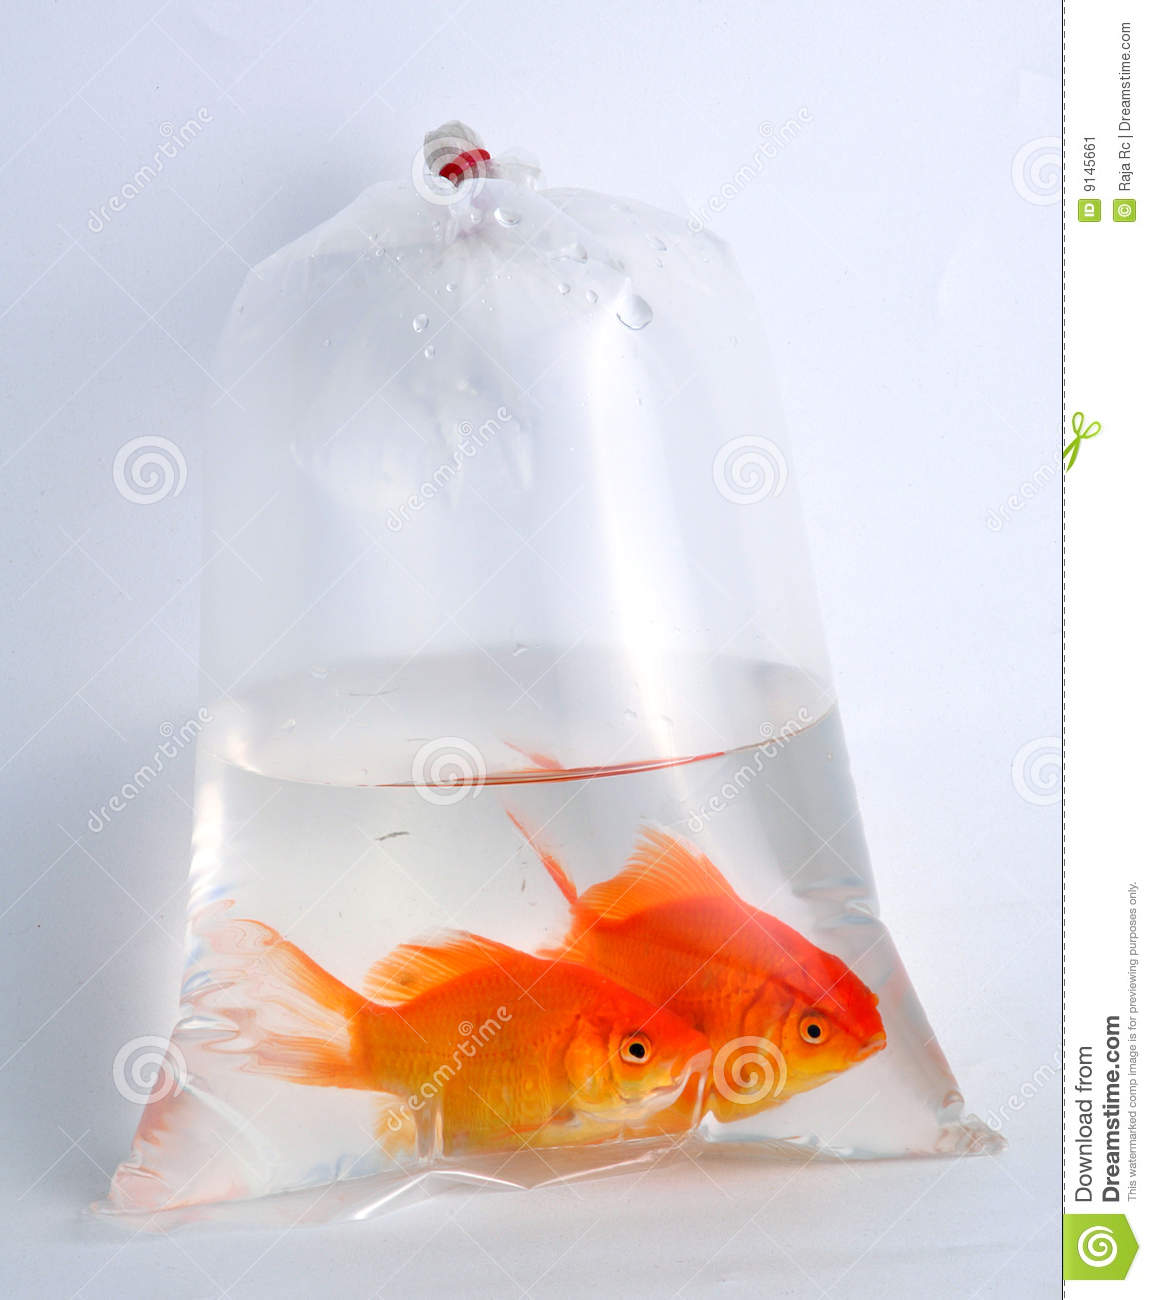 Gold fish in plastic bag stock image image 9145661 for Fish in a bag